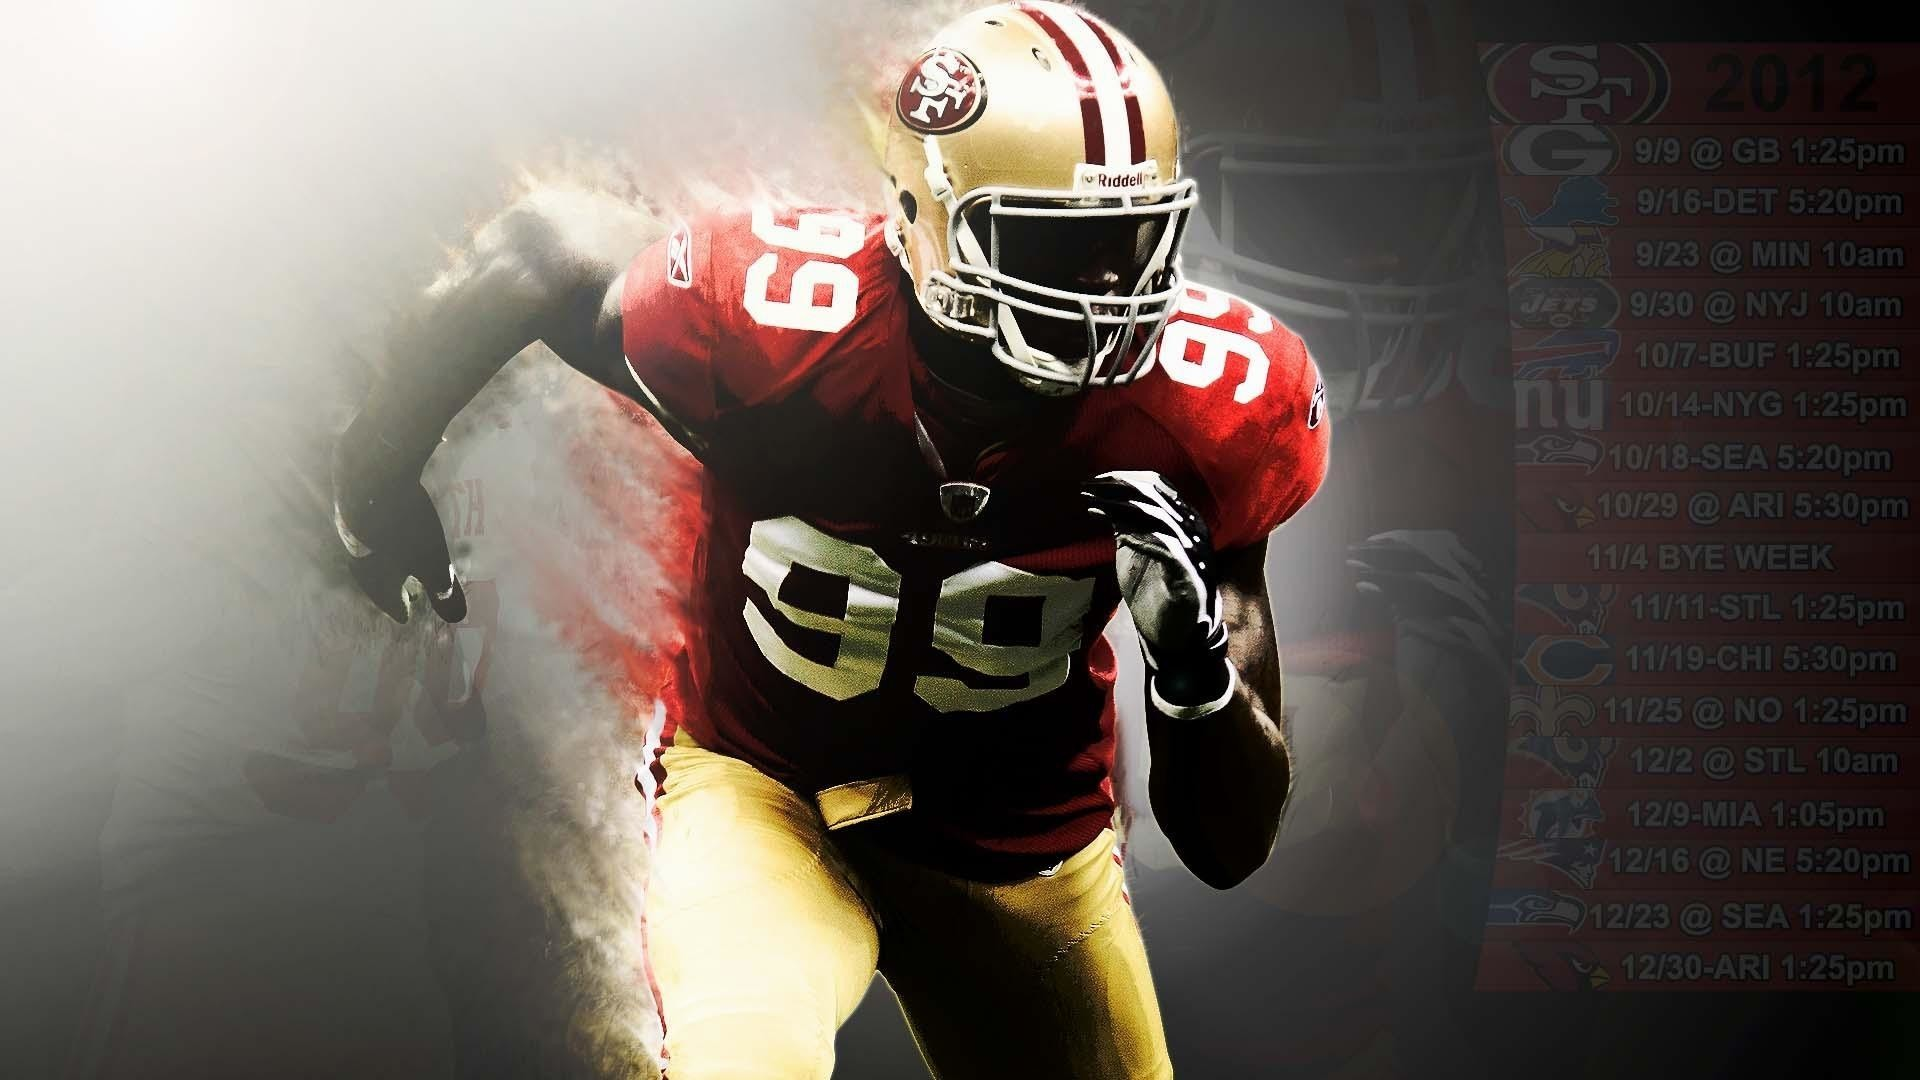 2048x1280 49ers crazy logo shield players wallpaper desktop wallpapers high definition cool download free best apple picture 2048×1280 Wallpaper HD